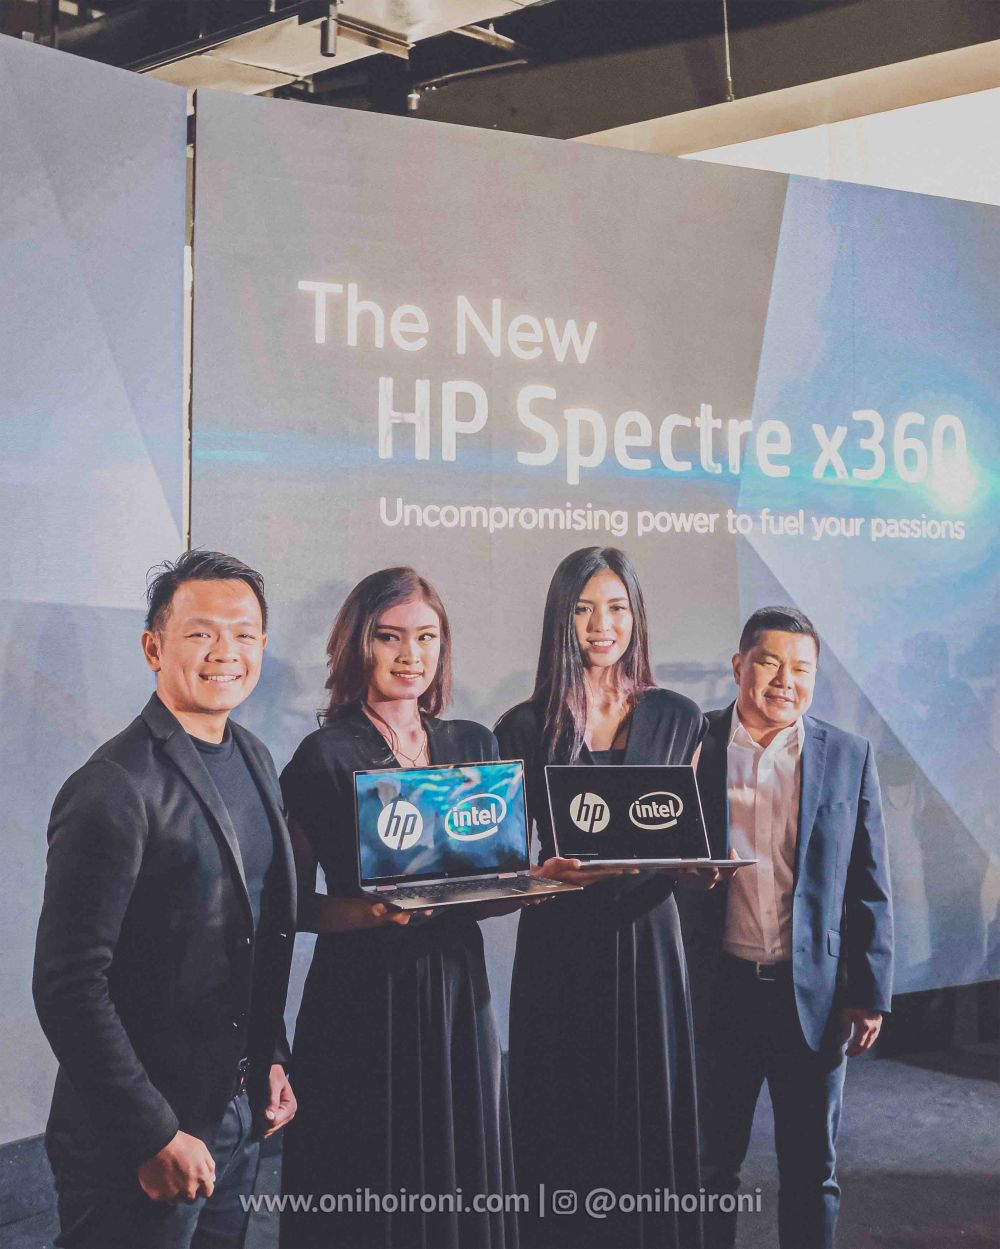 1 Laptop terbaru hp indonesia spectre x360 oni hoironi review laptop terbaru hp indonesia.jpg